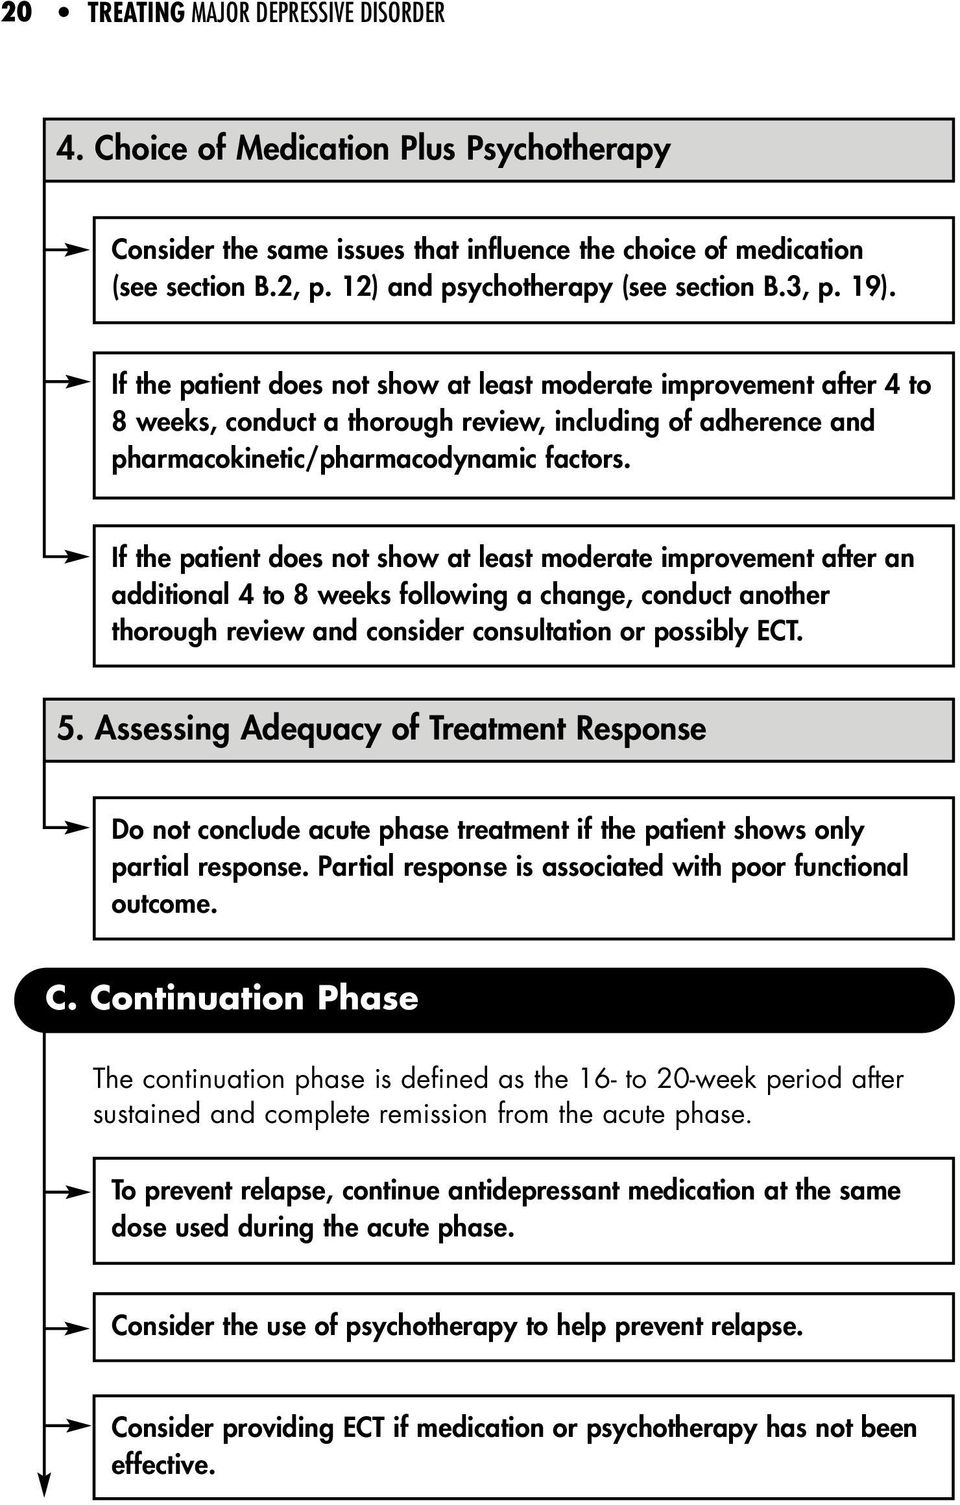 If the patient does not show at least moderate improvement after 4 to 8 weeks, conduct a thorough review, including of adherence and pharmacokinetic/pharmacodynamic factors.